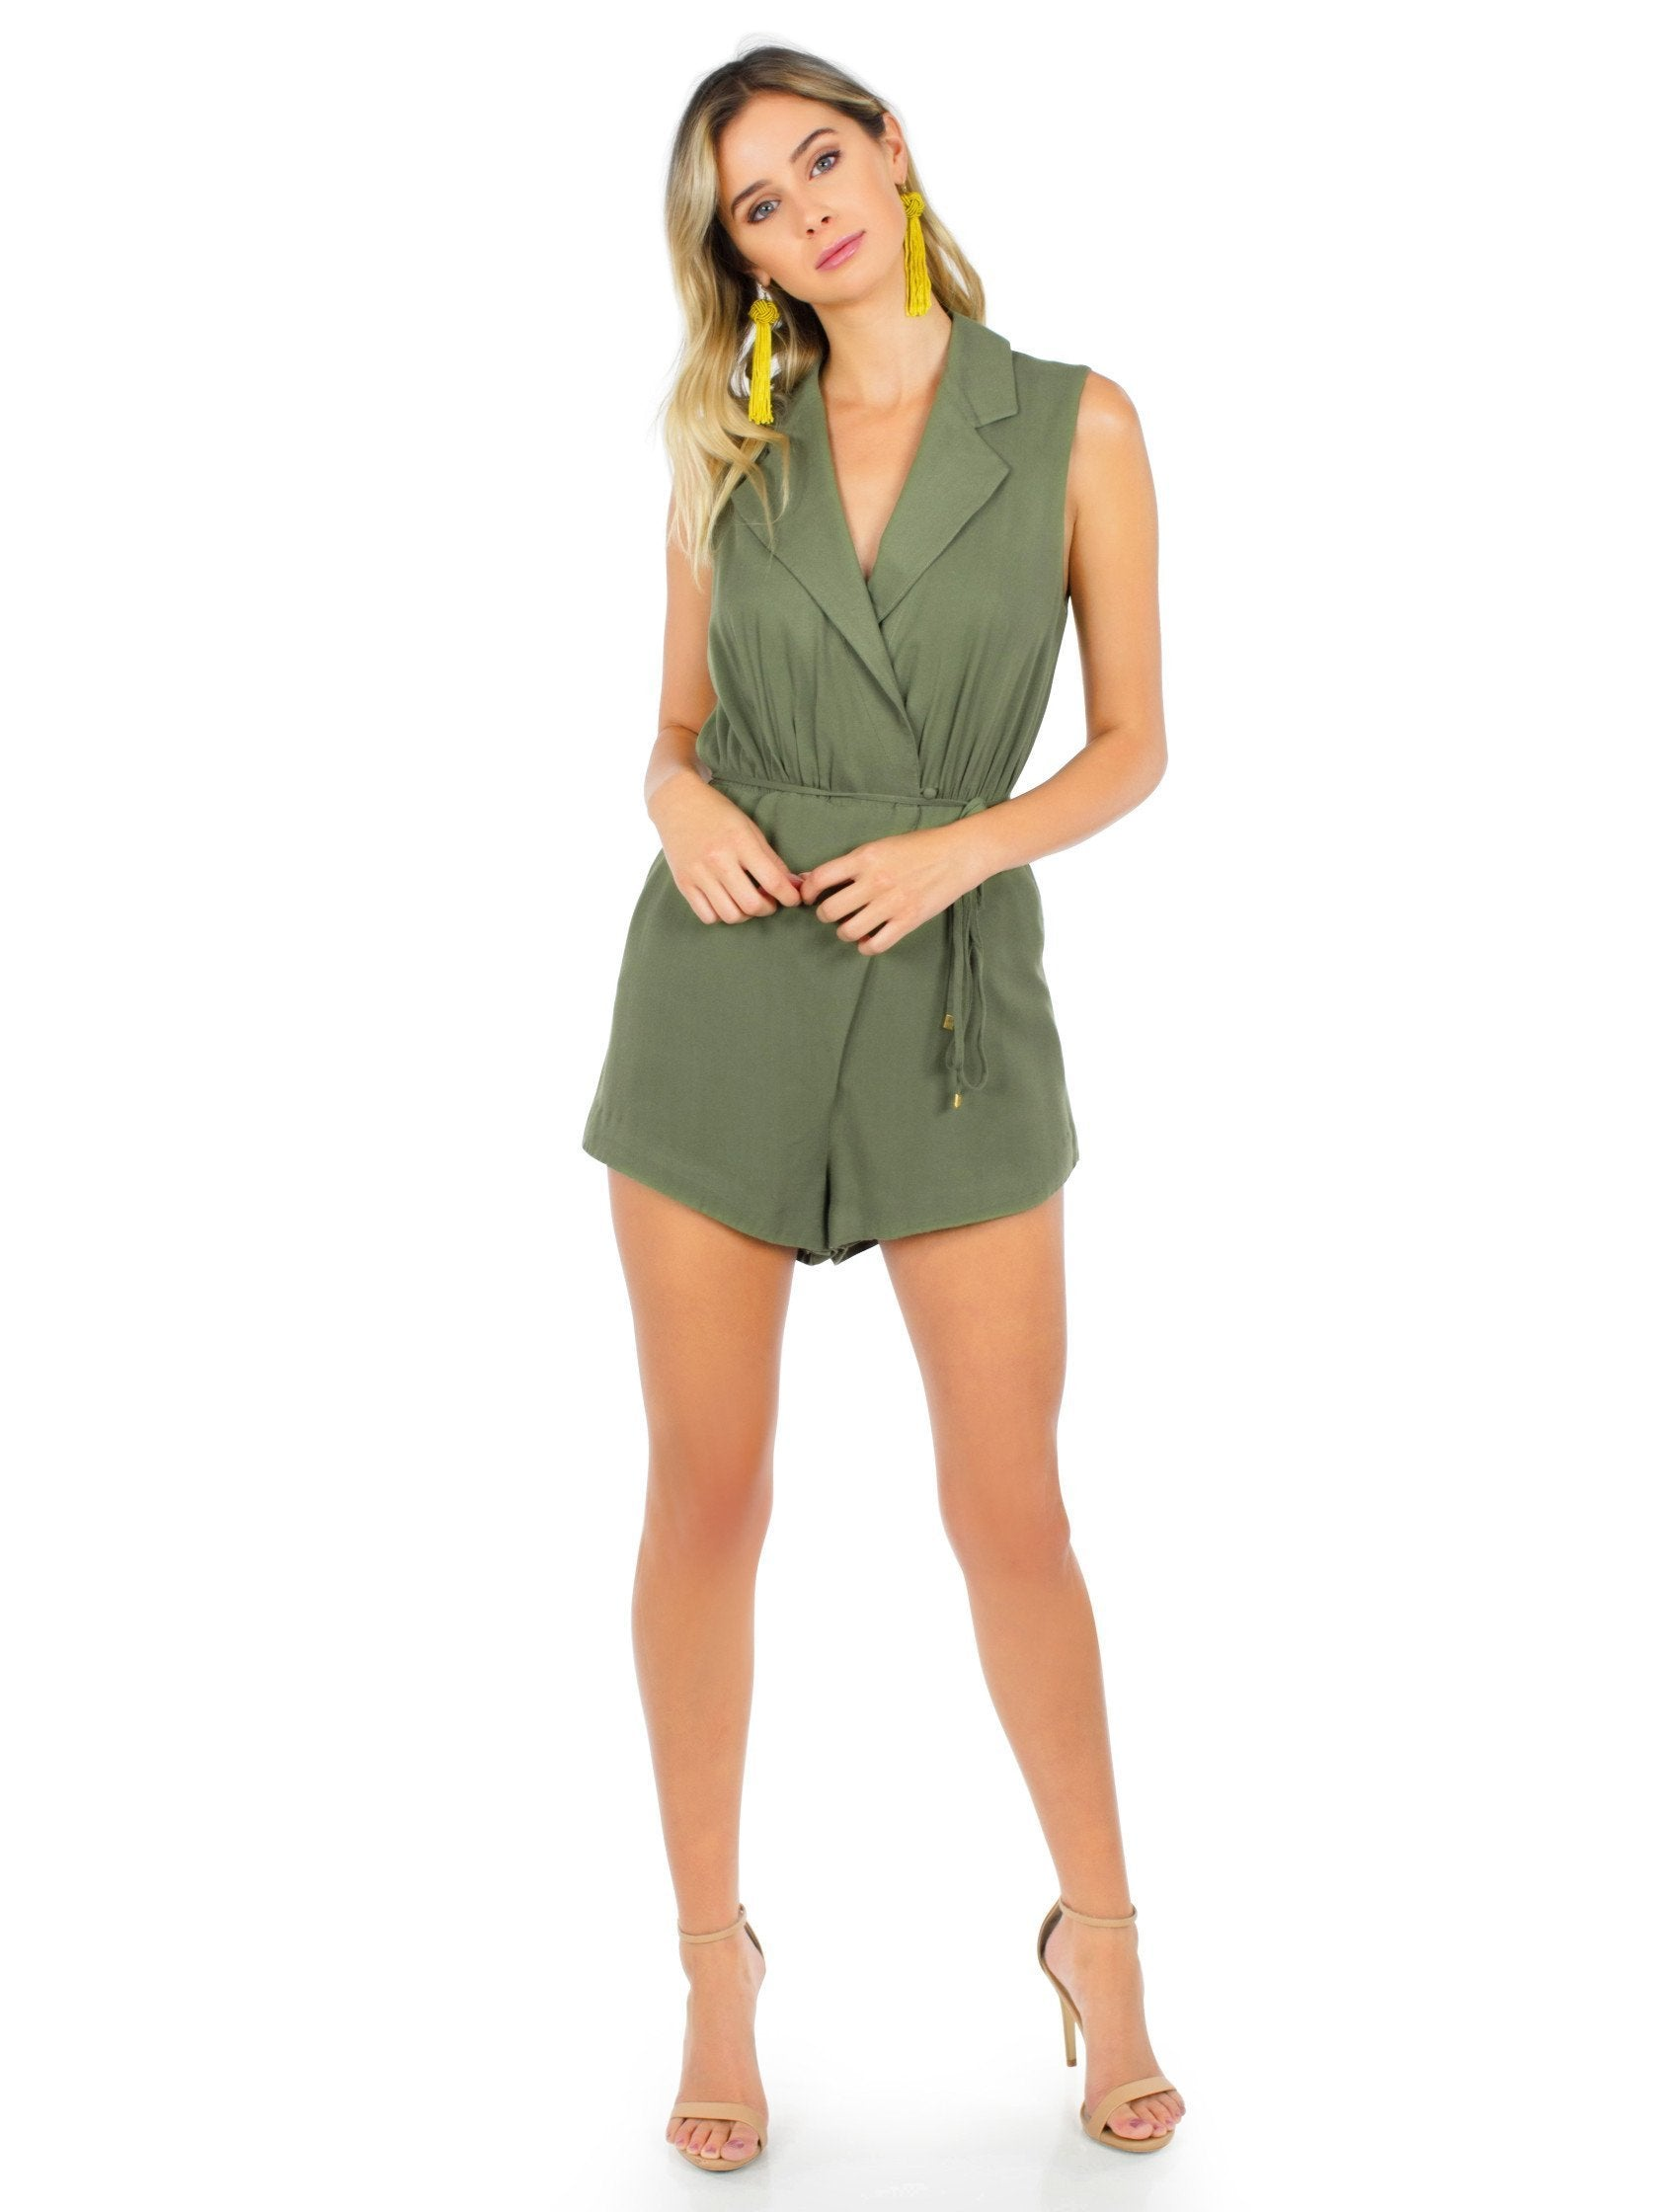 Girl outfit in a romper rental from STYLESTALKER called Marna Romper